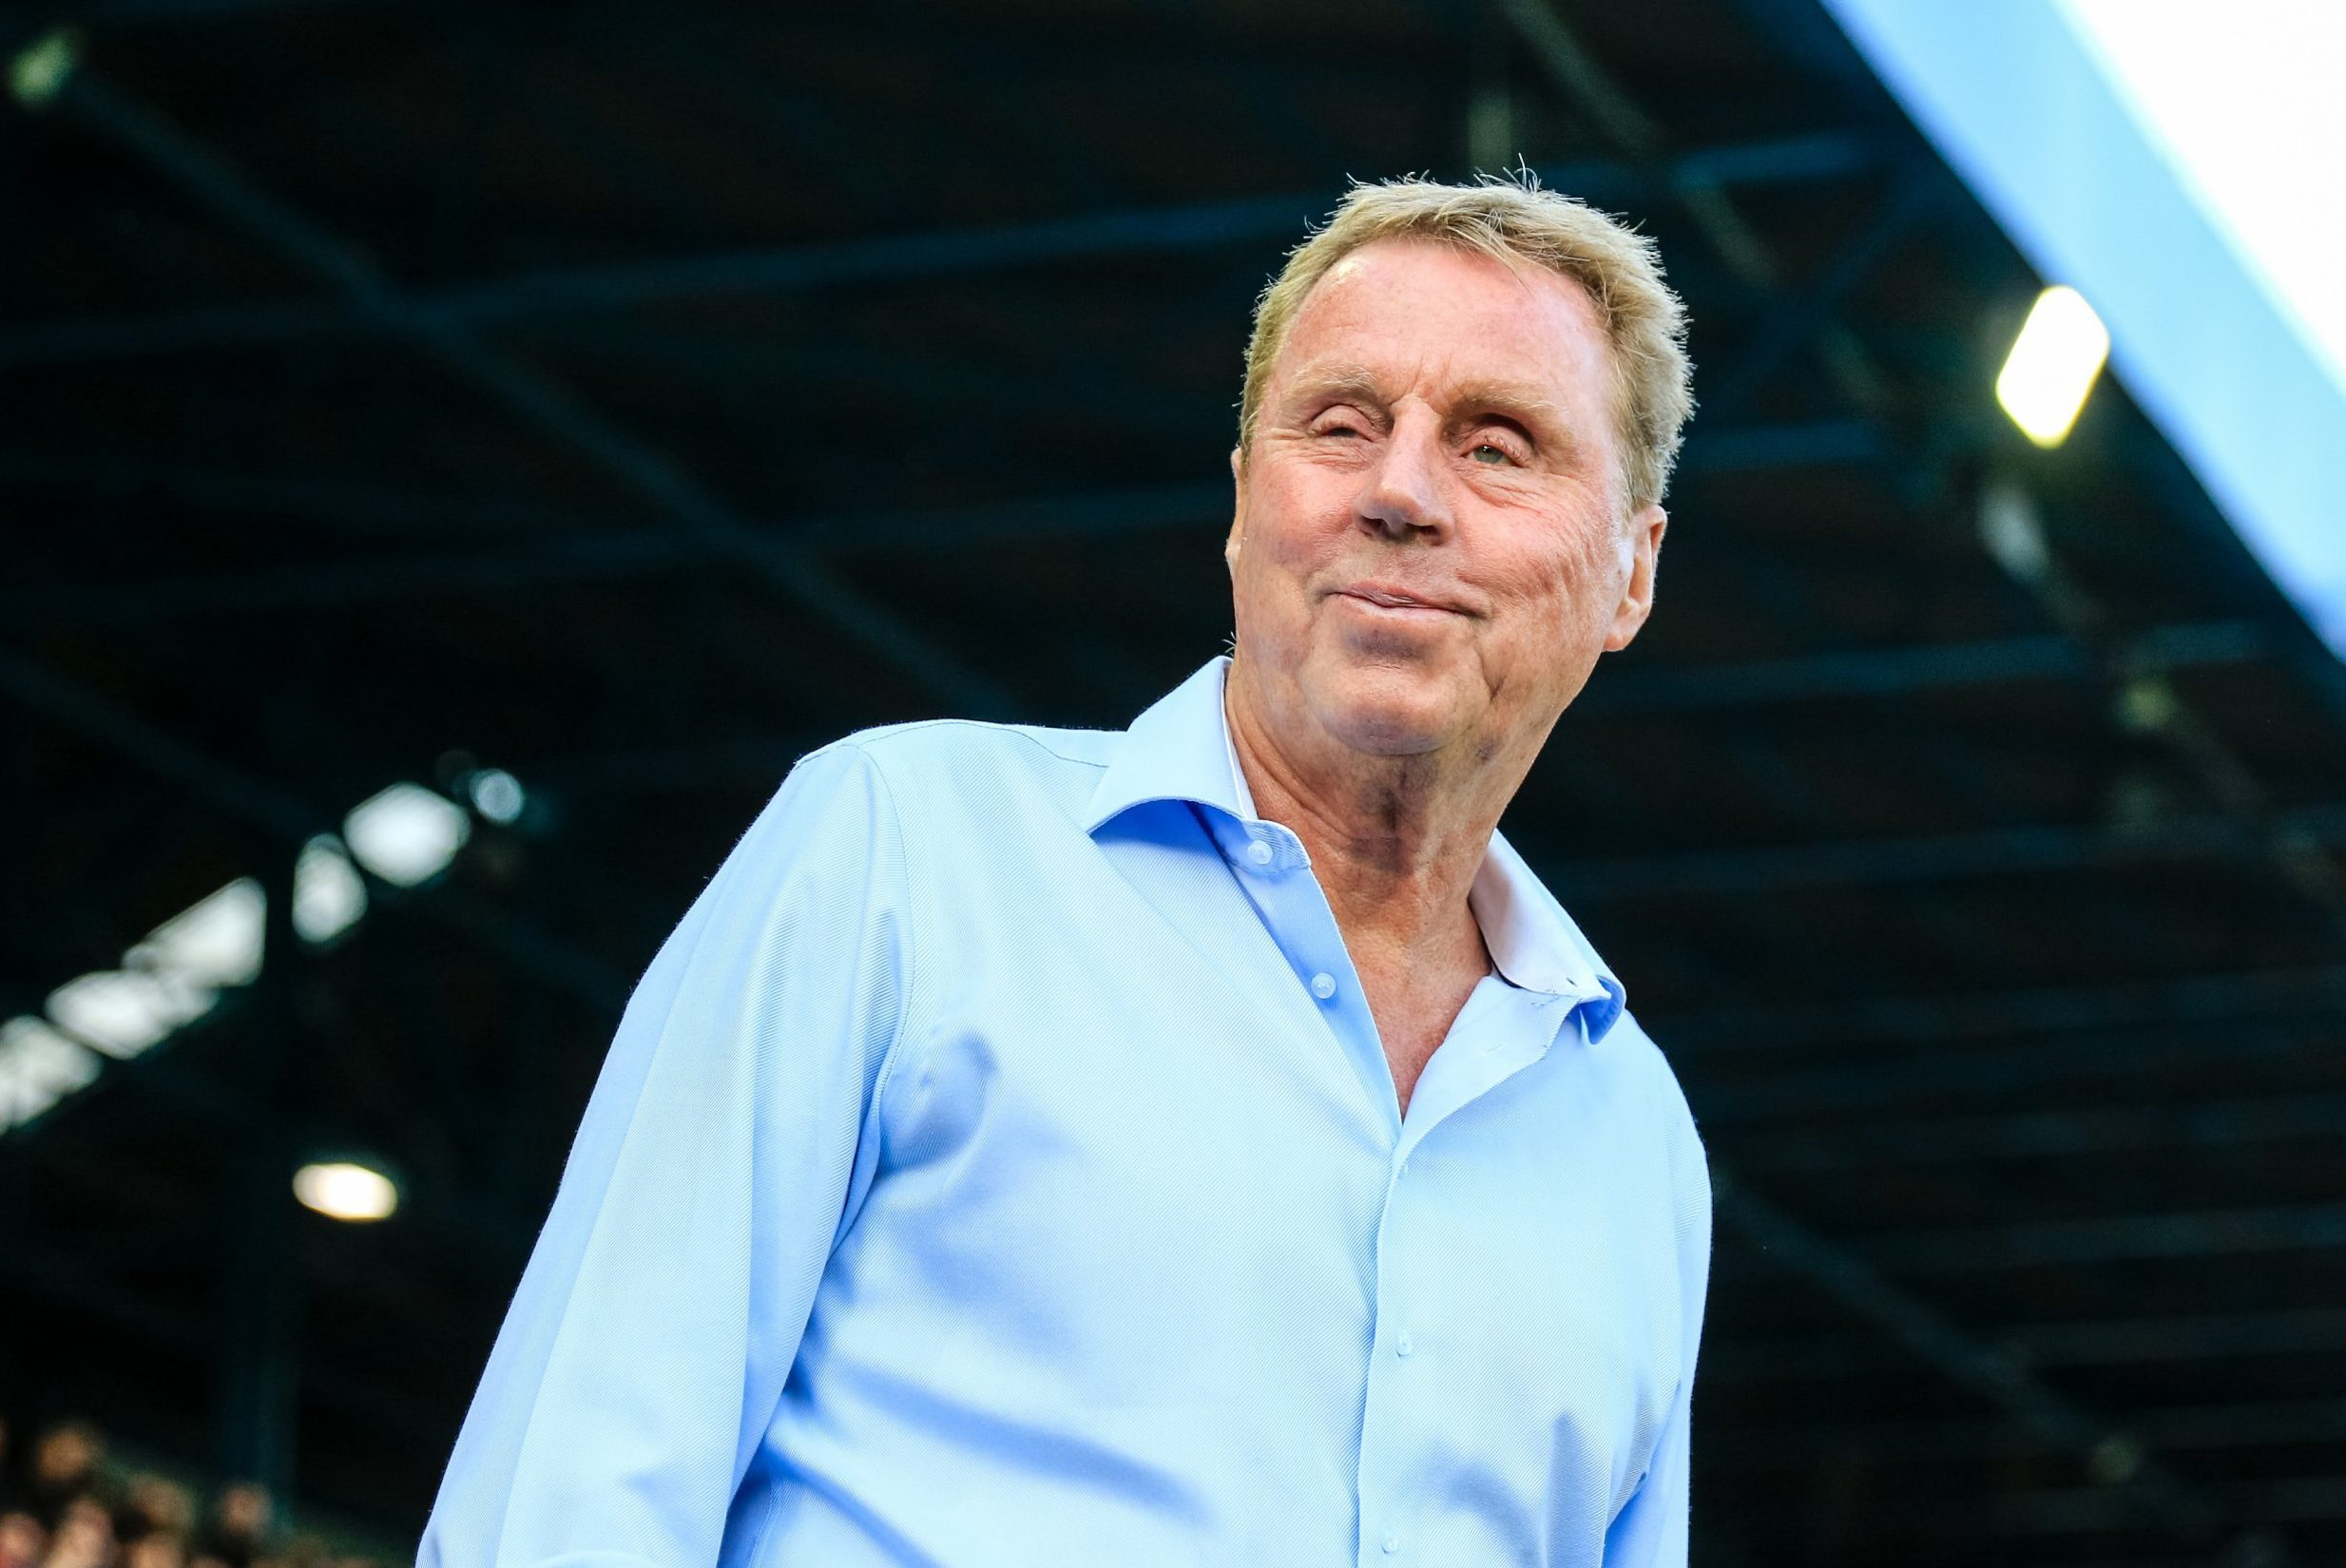 Harry Redknapp is loving it as he 'signs £500,000 deal to be face of McDonald's'